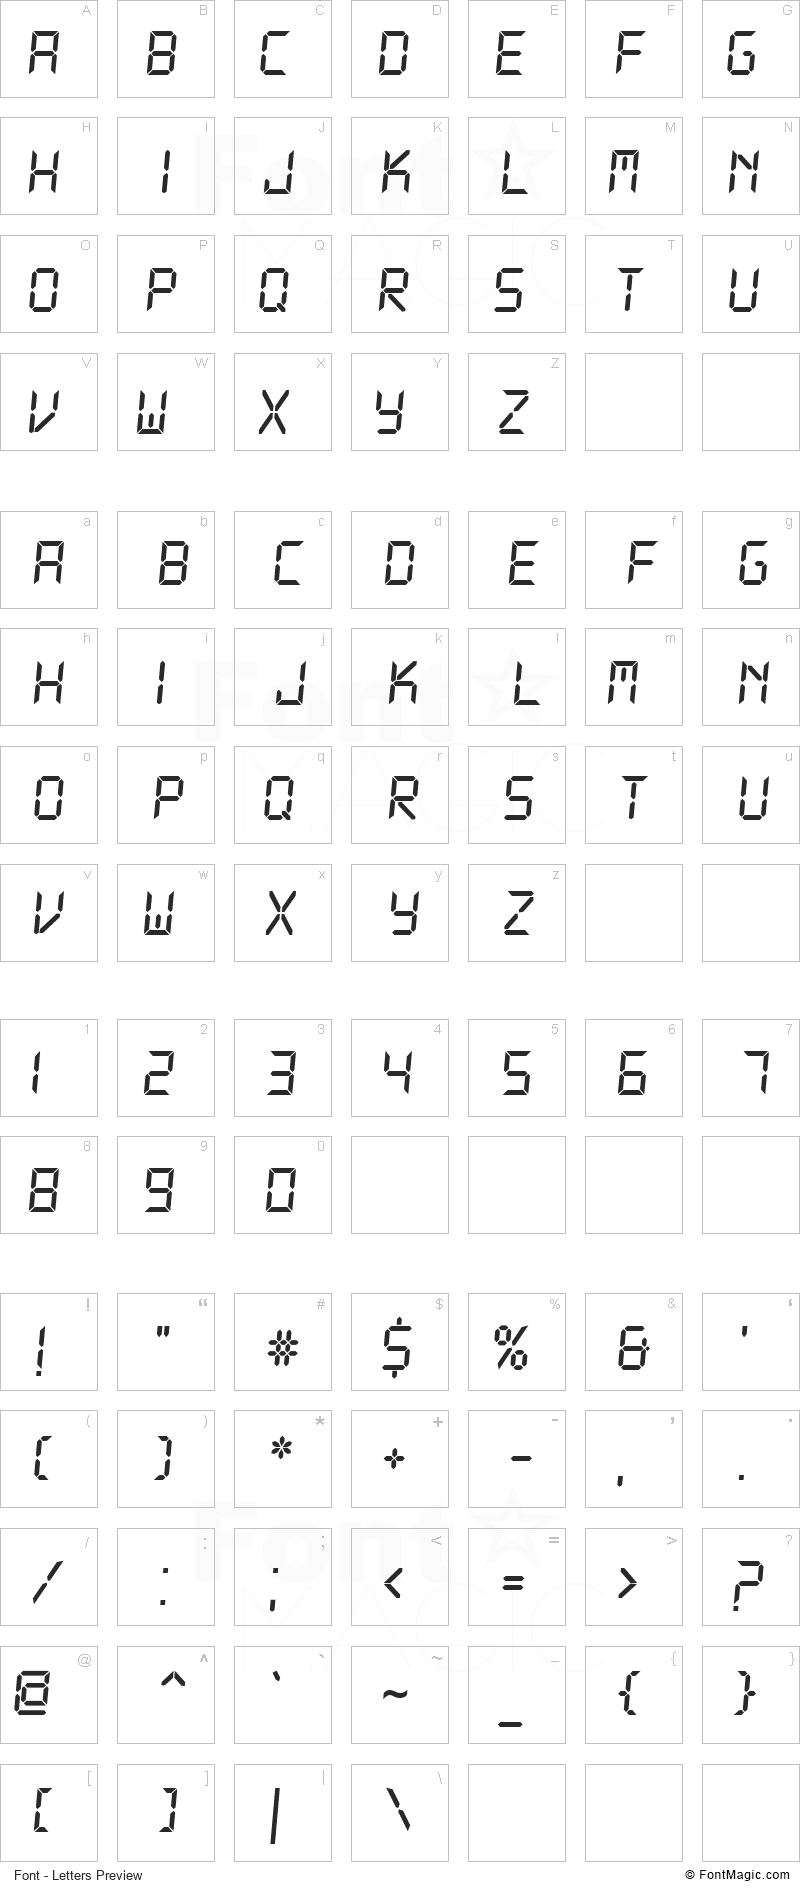 DS-Digital Font - All Latters Preview Chart